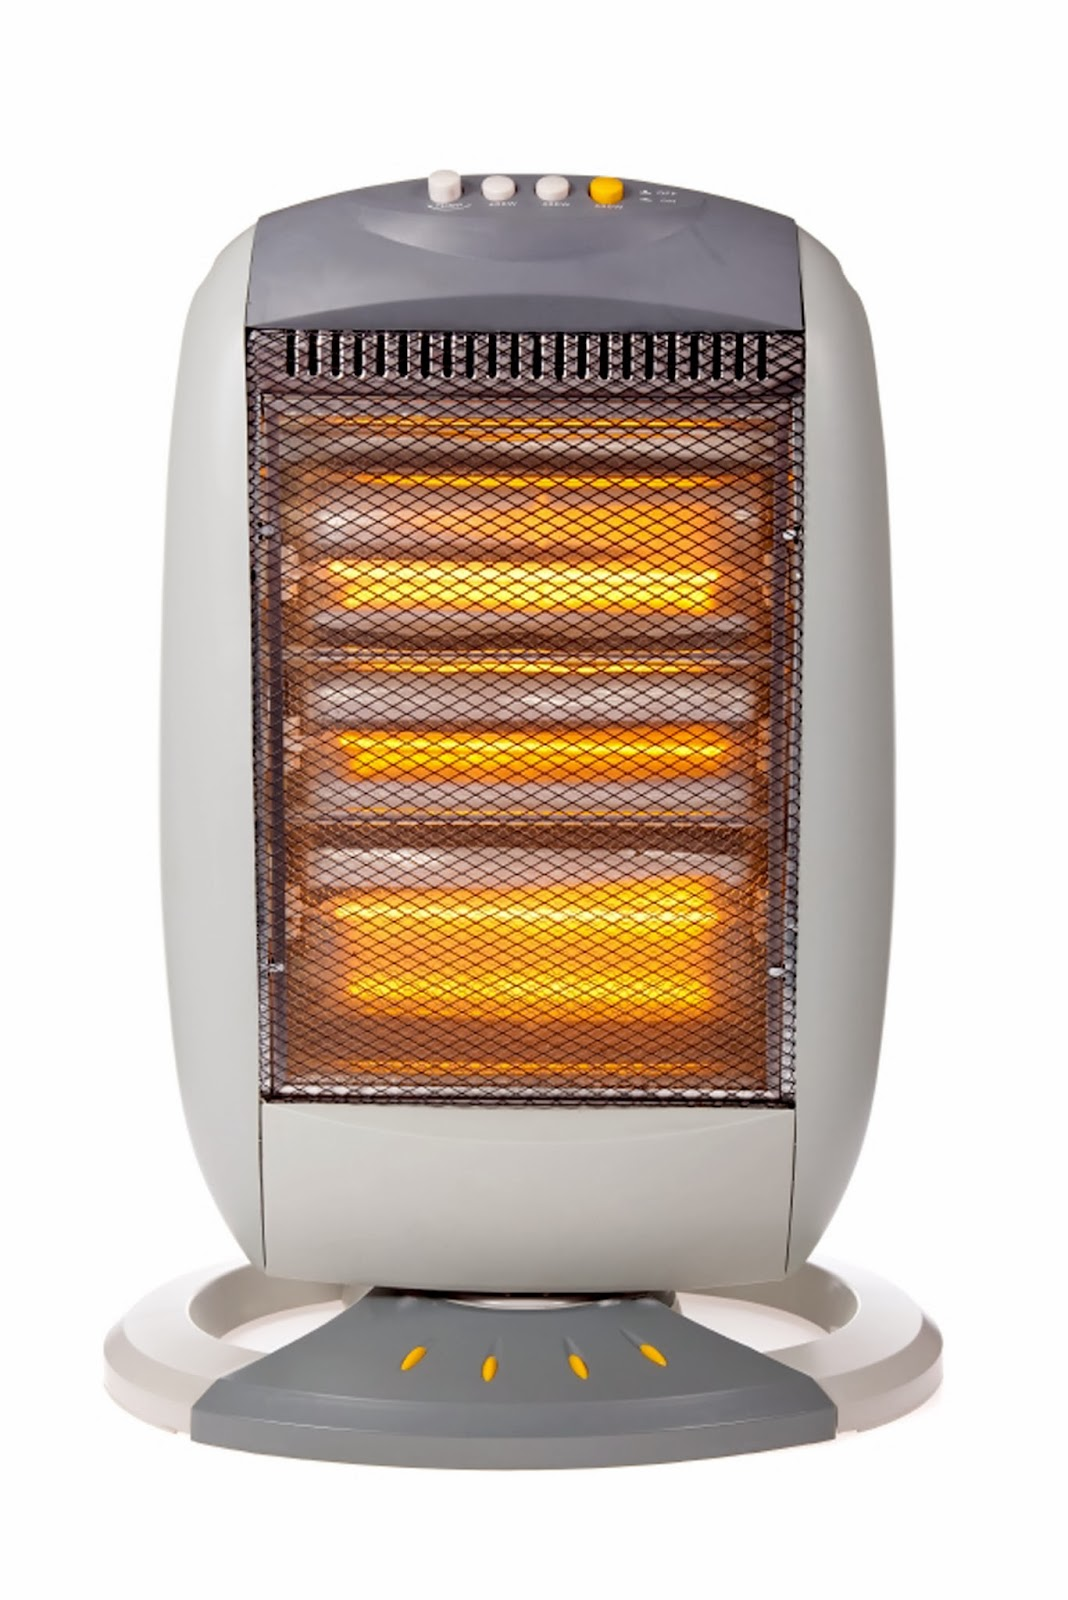 space heater safety tips ehs works. Black Bedroom Furniture Sets. Home Design Ideas